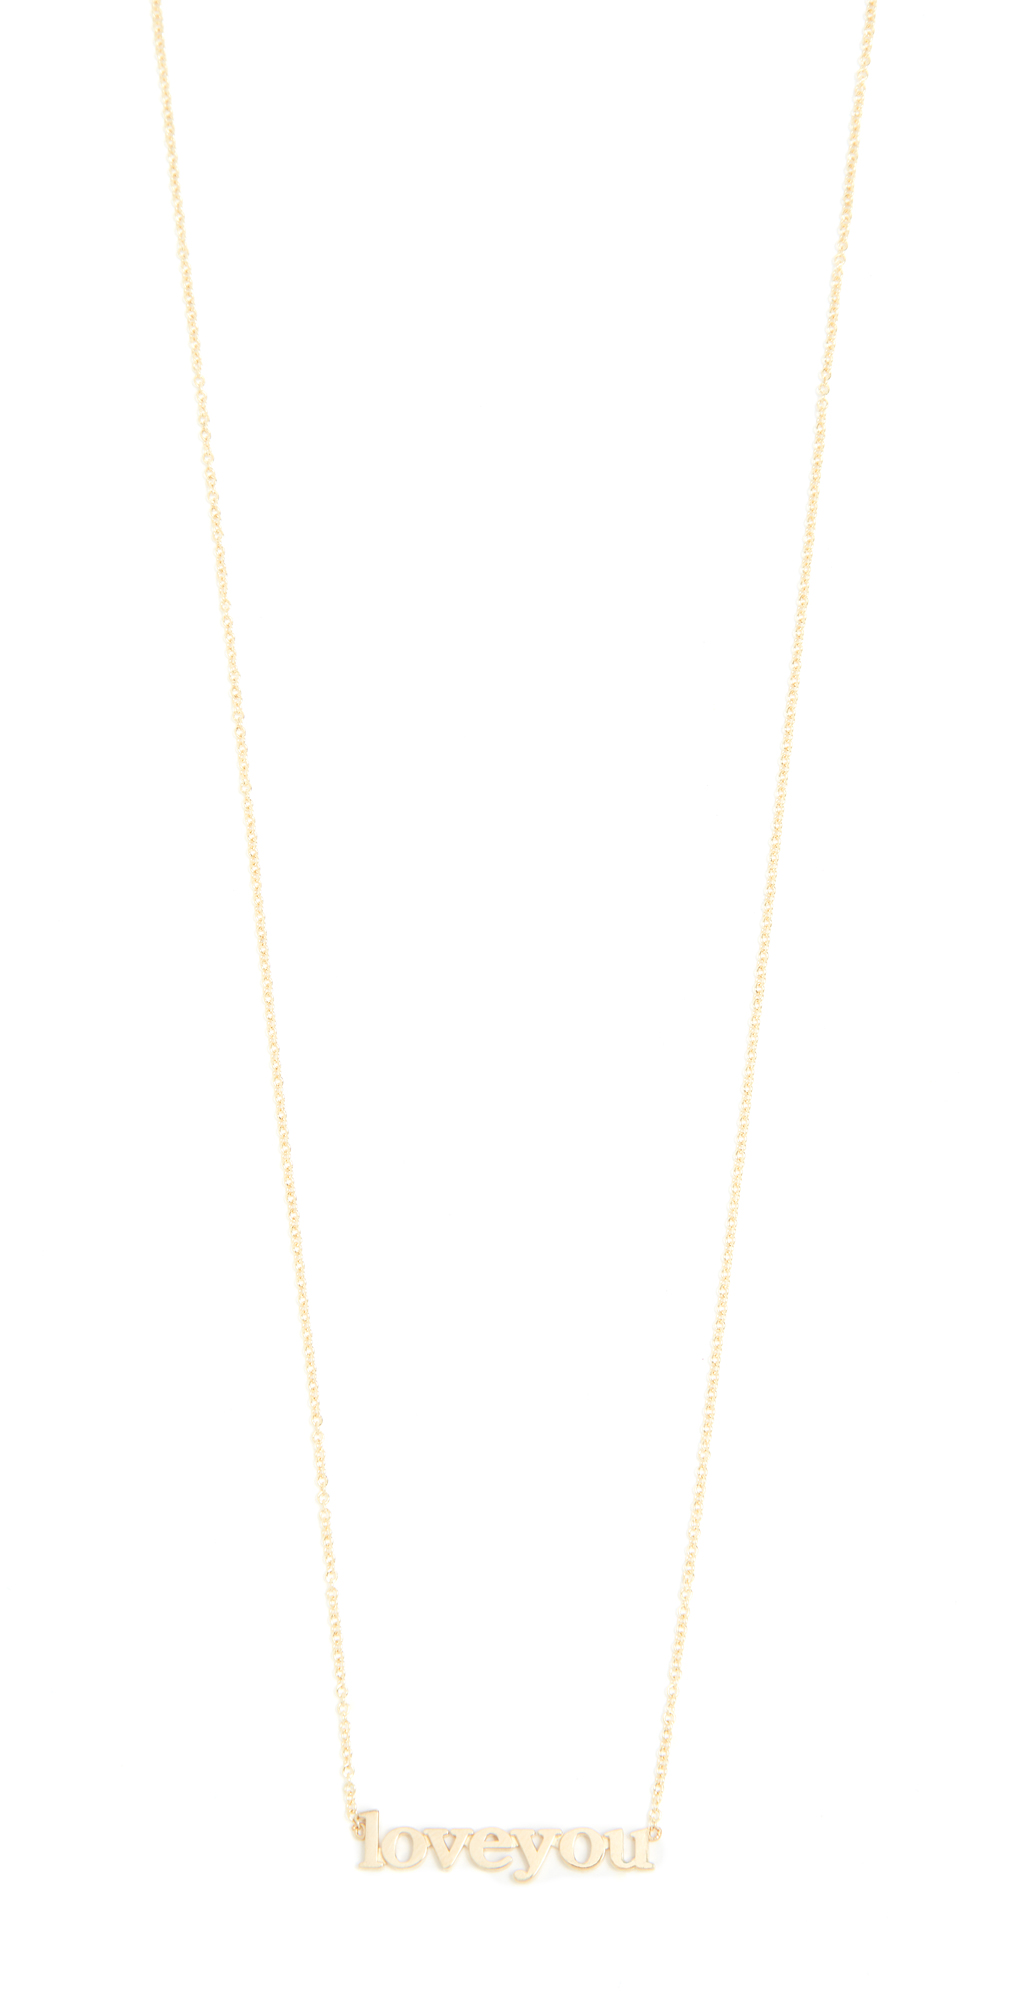 18k Gold Love You Necklace